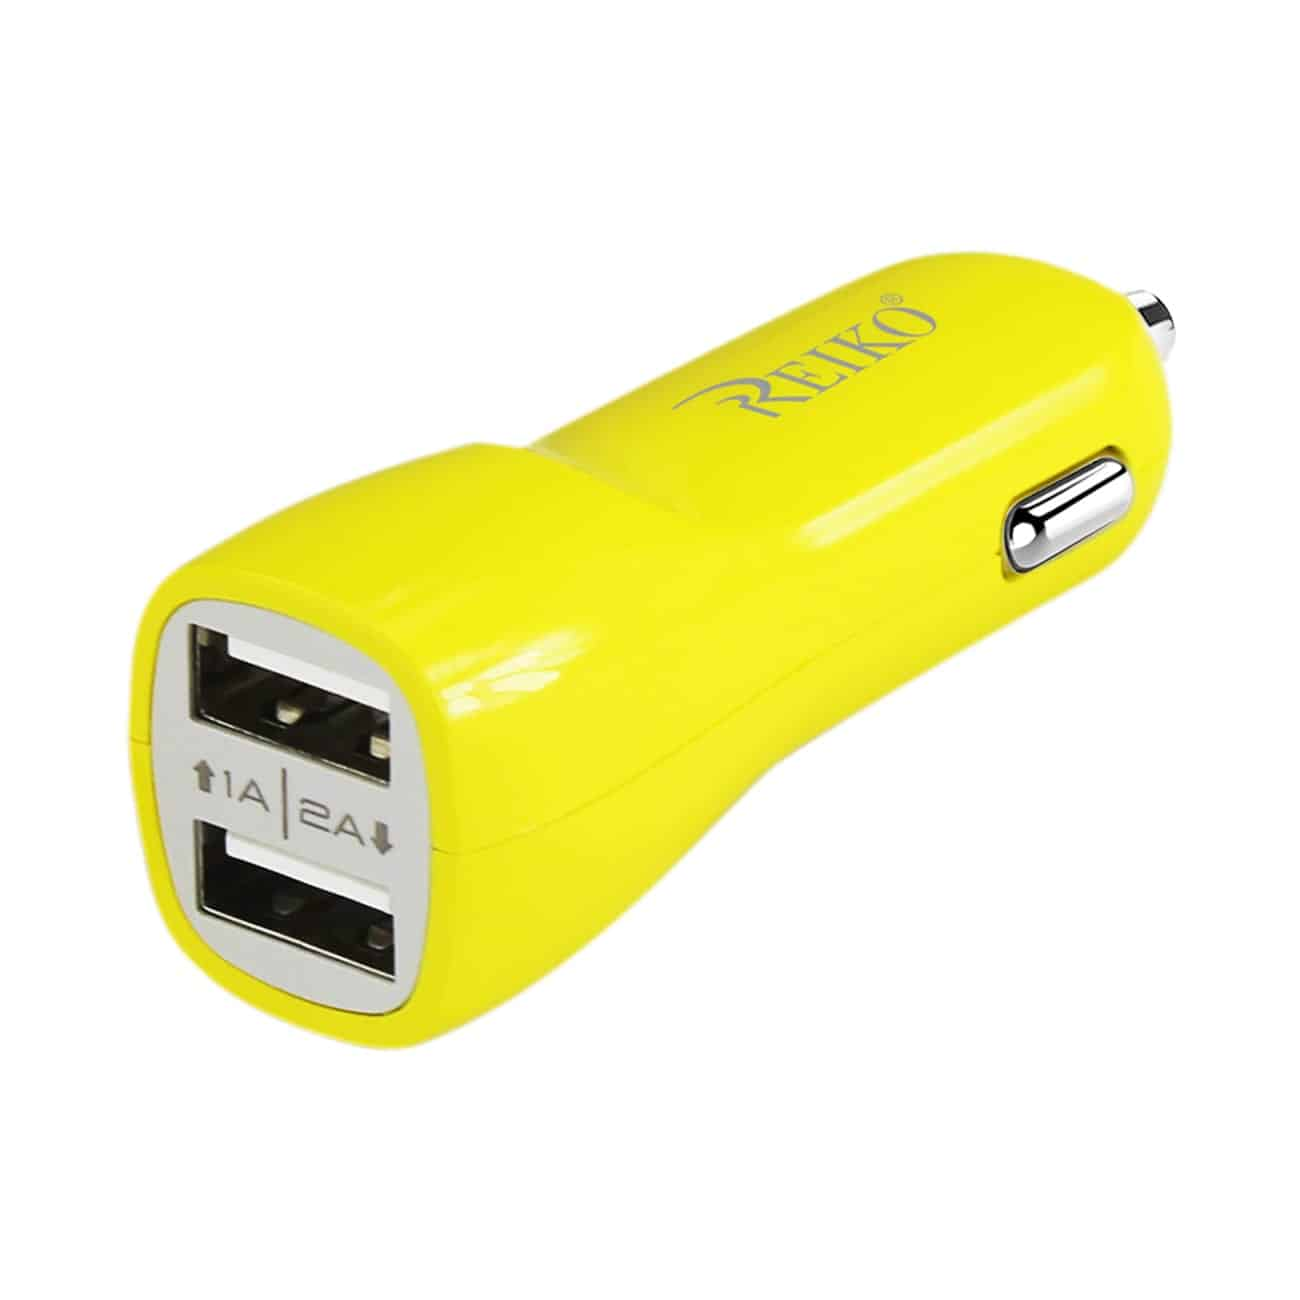 MICRO USB 2 AMP DUAL USB PORTS CAR CHARGER IN YELLOW